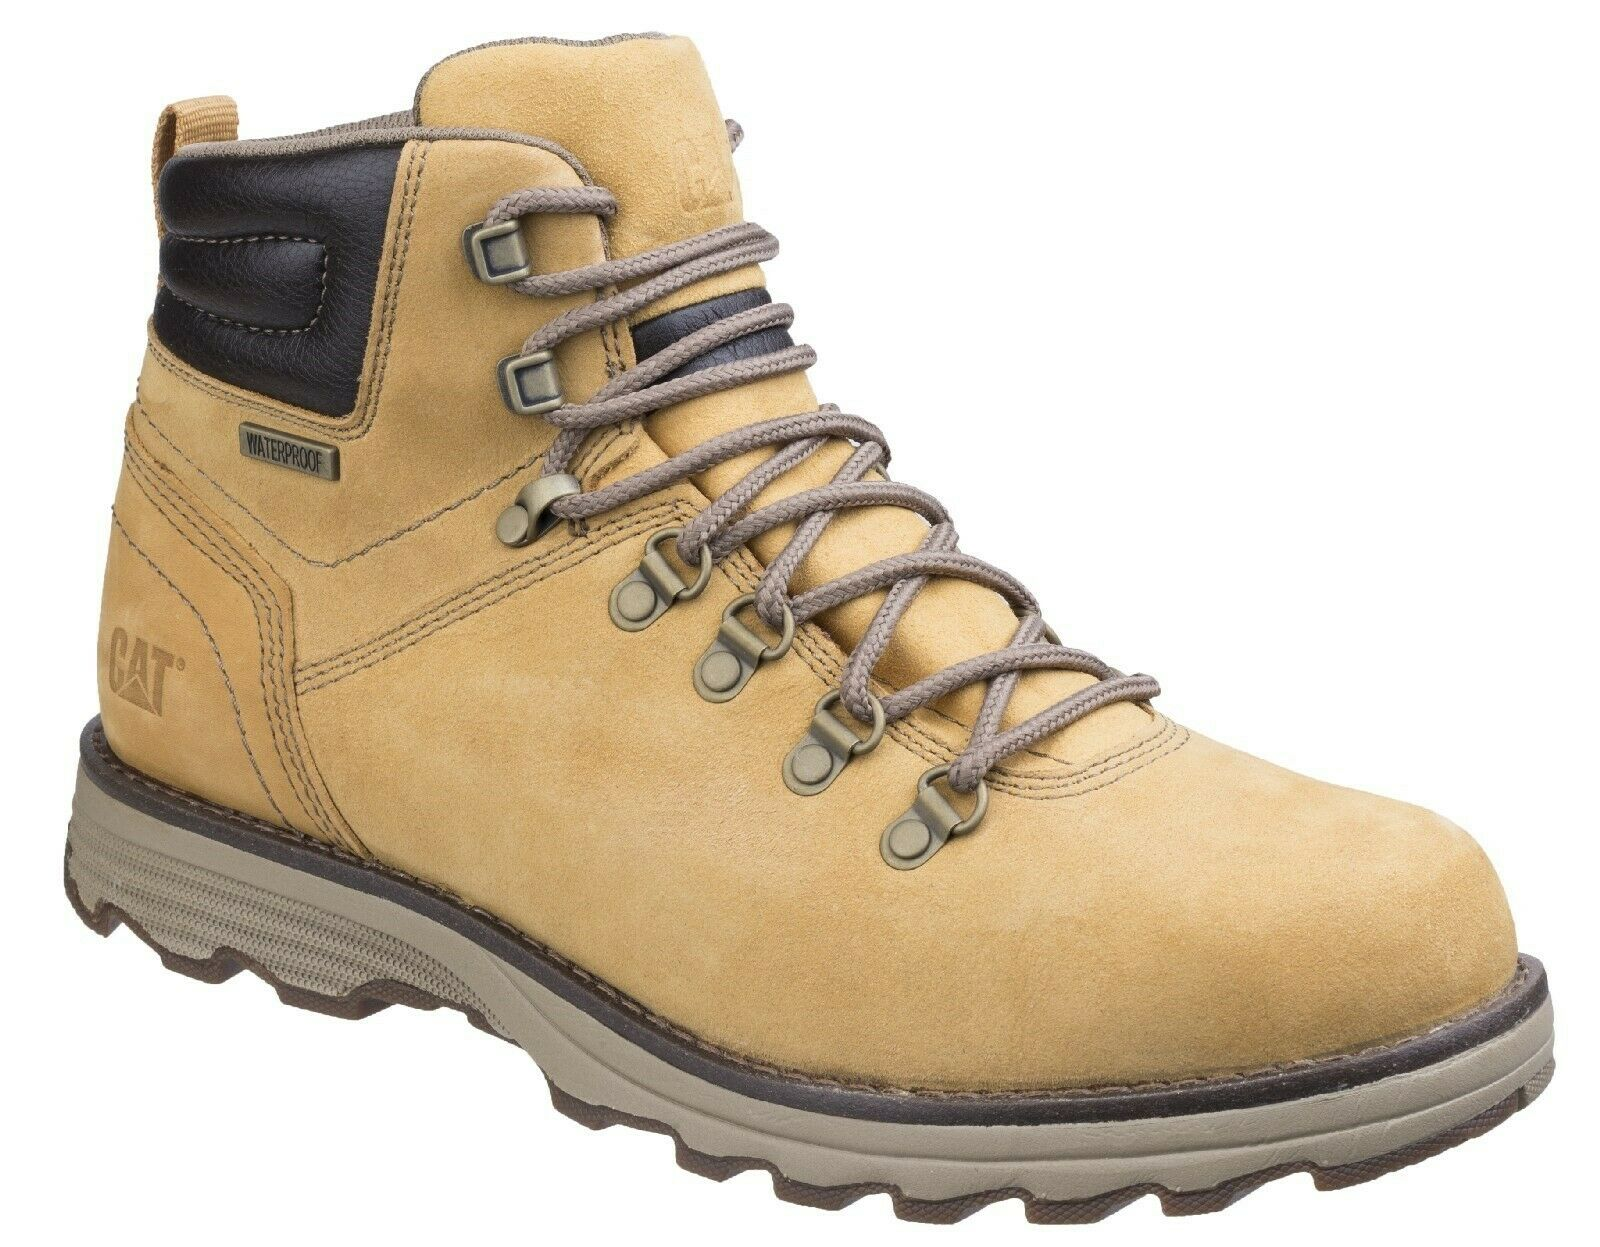 Caterpillar CAT Lifestyle Sire honey leather waterproof lace up Stiefel